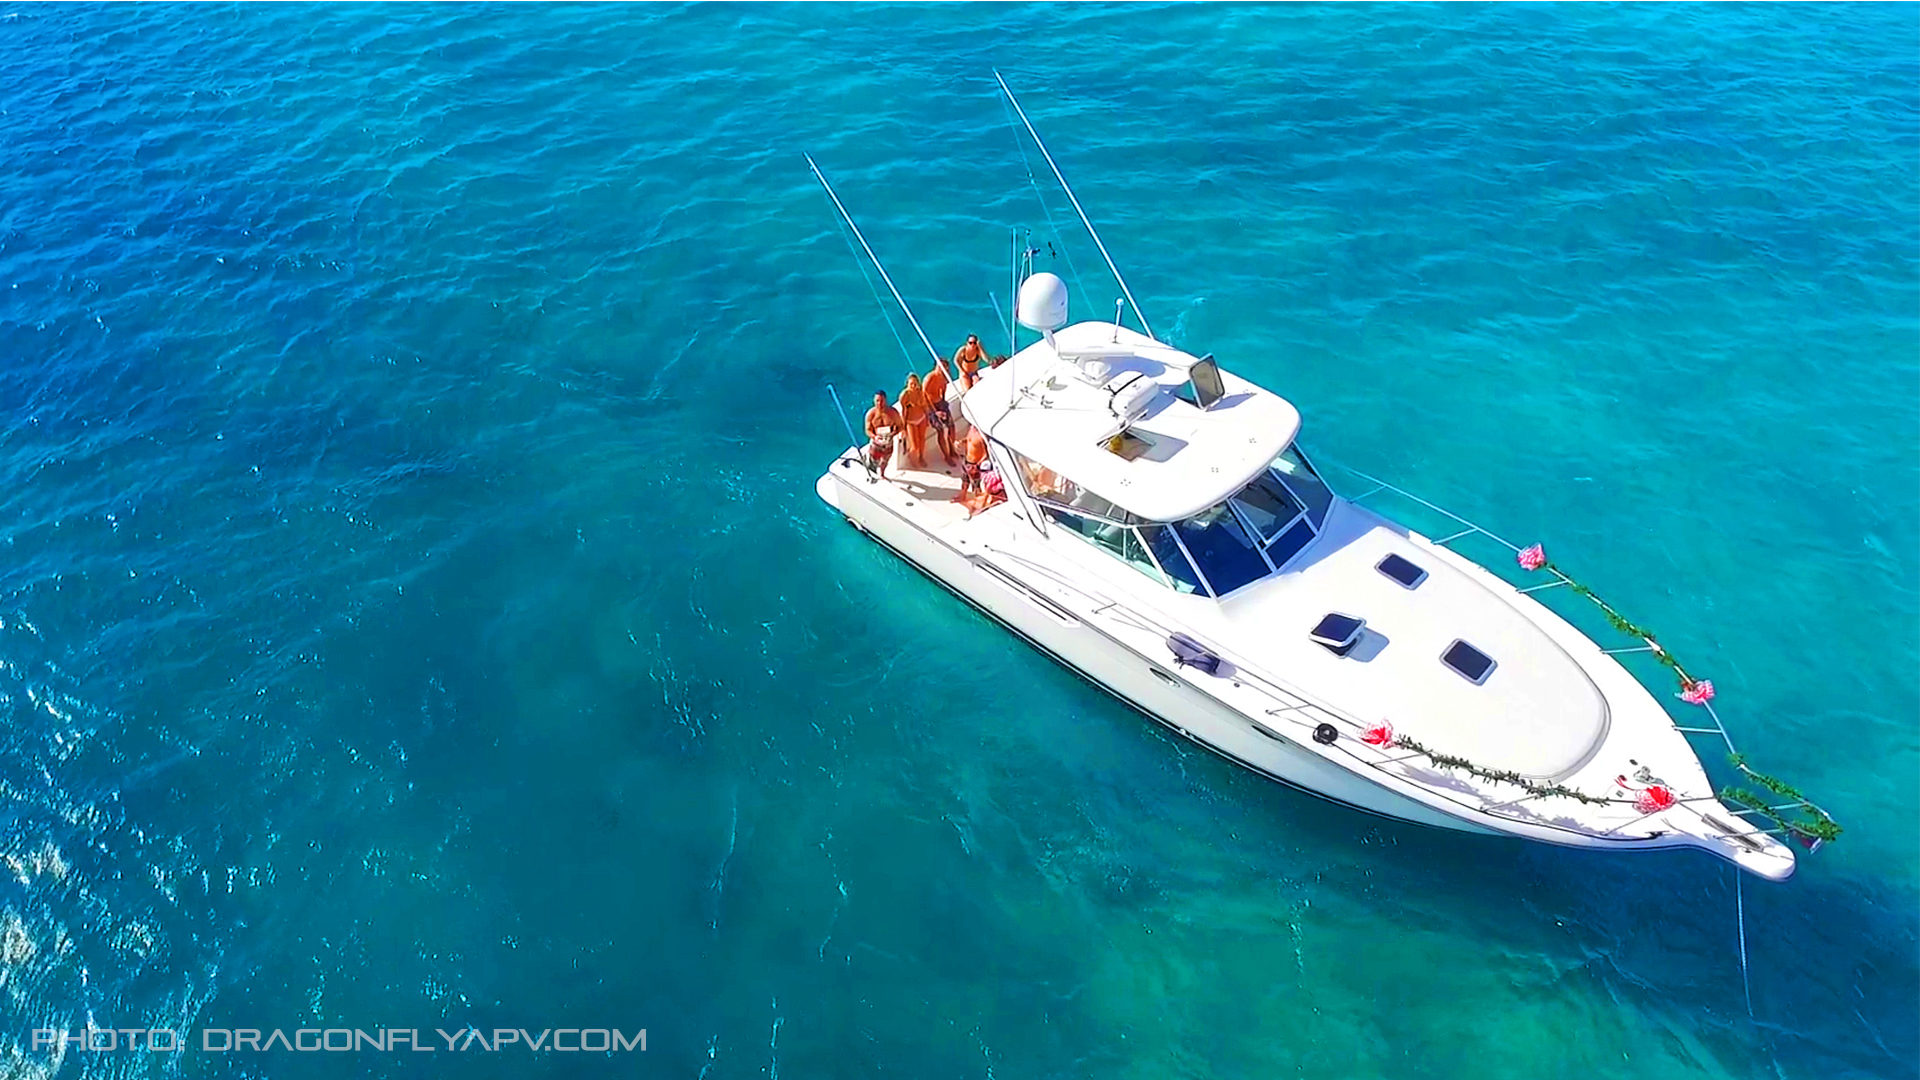 Rubicon - Tiarra 45- Ideal for getting out of Waikiki on a comfortable high speed day trip to the west side of Oahu and beyond.